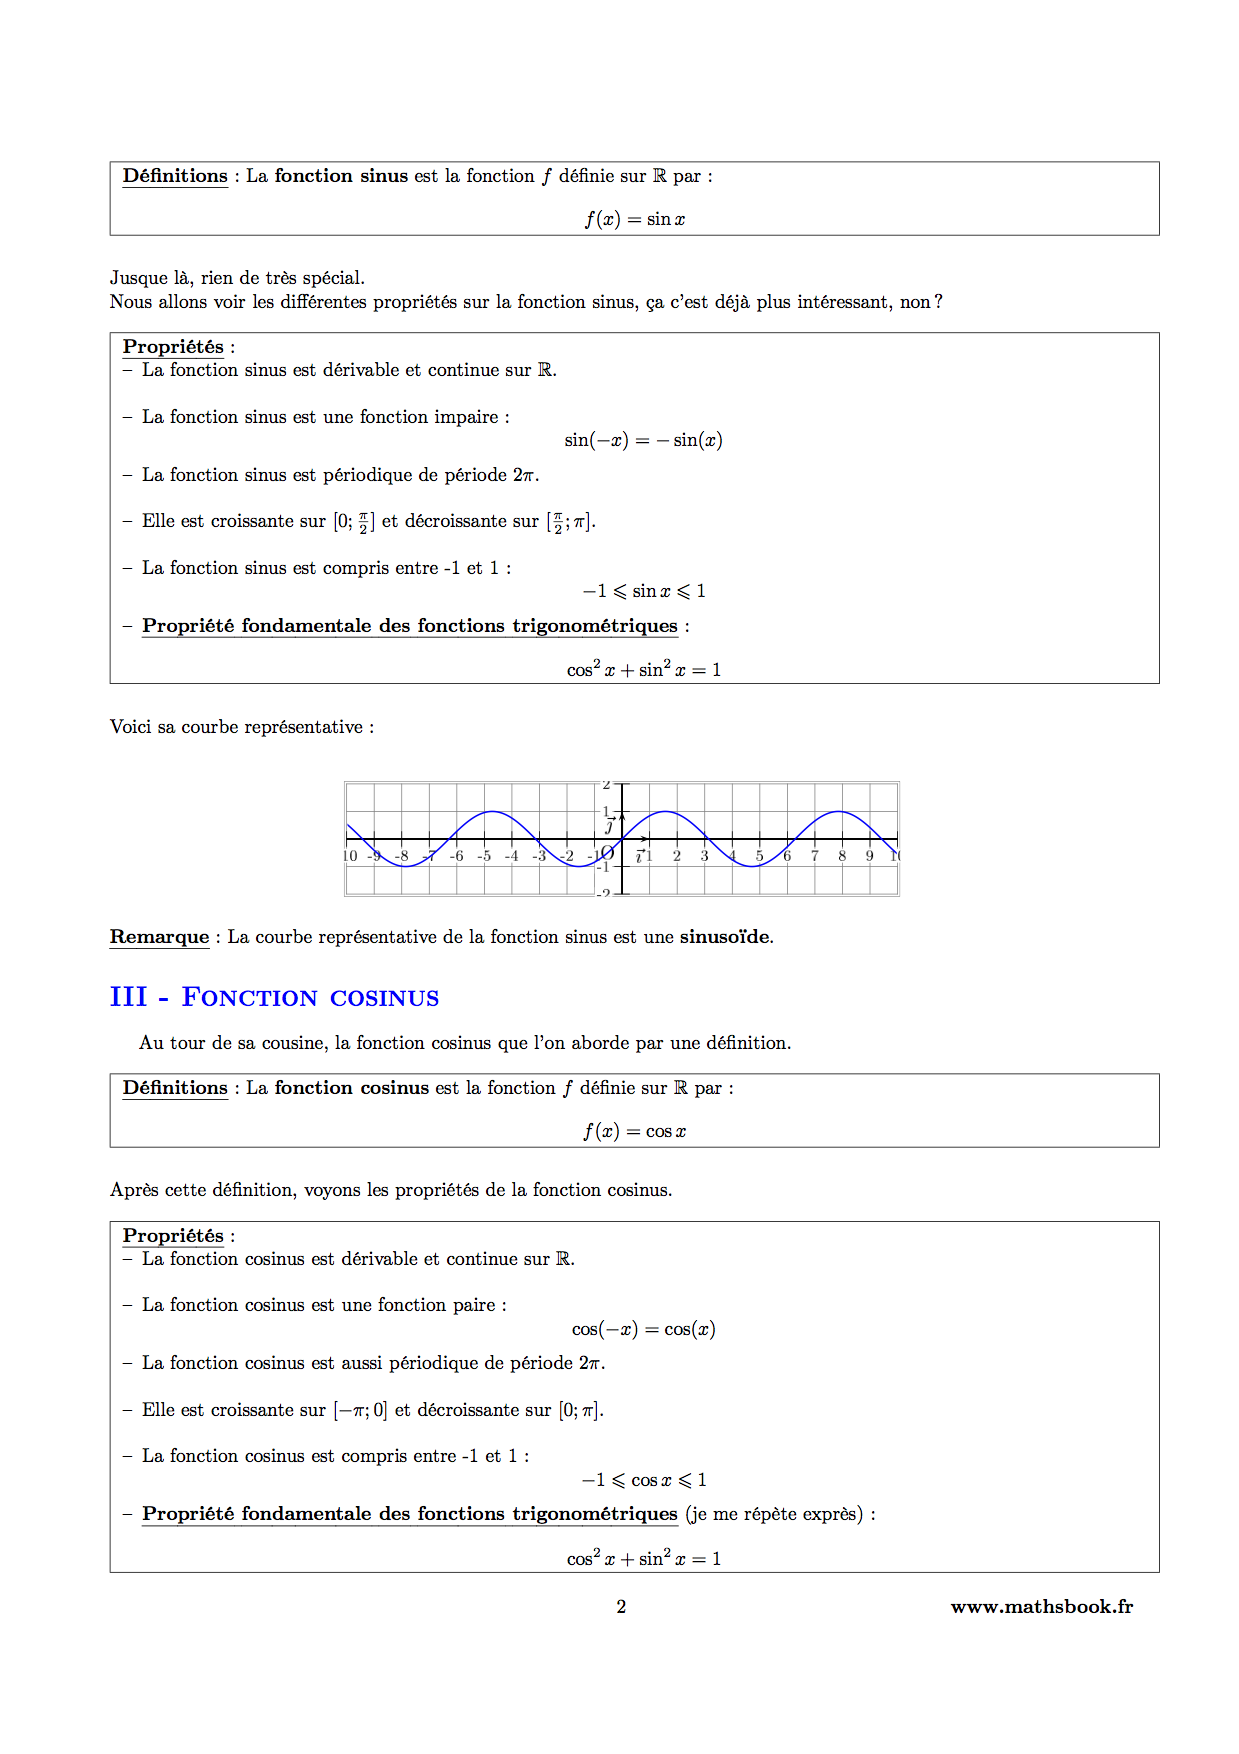 fonction sinus definitions et proprietes